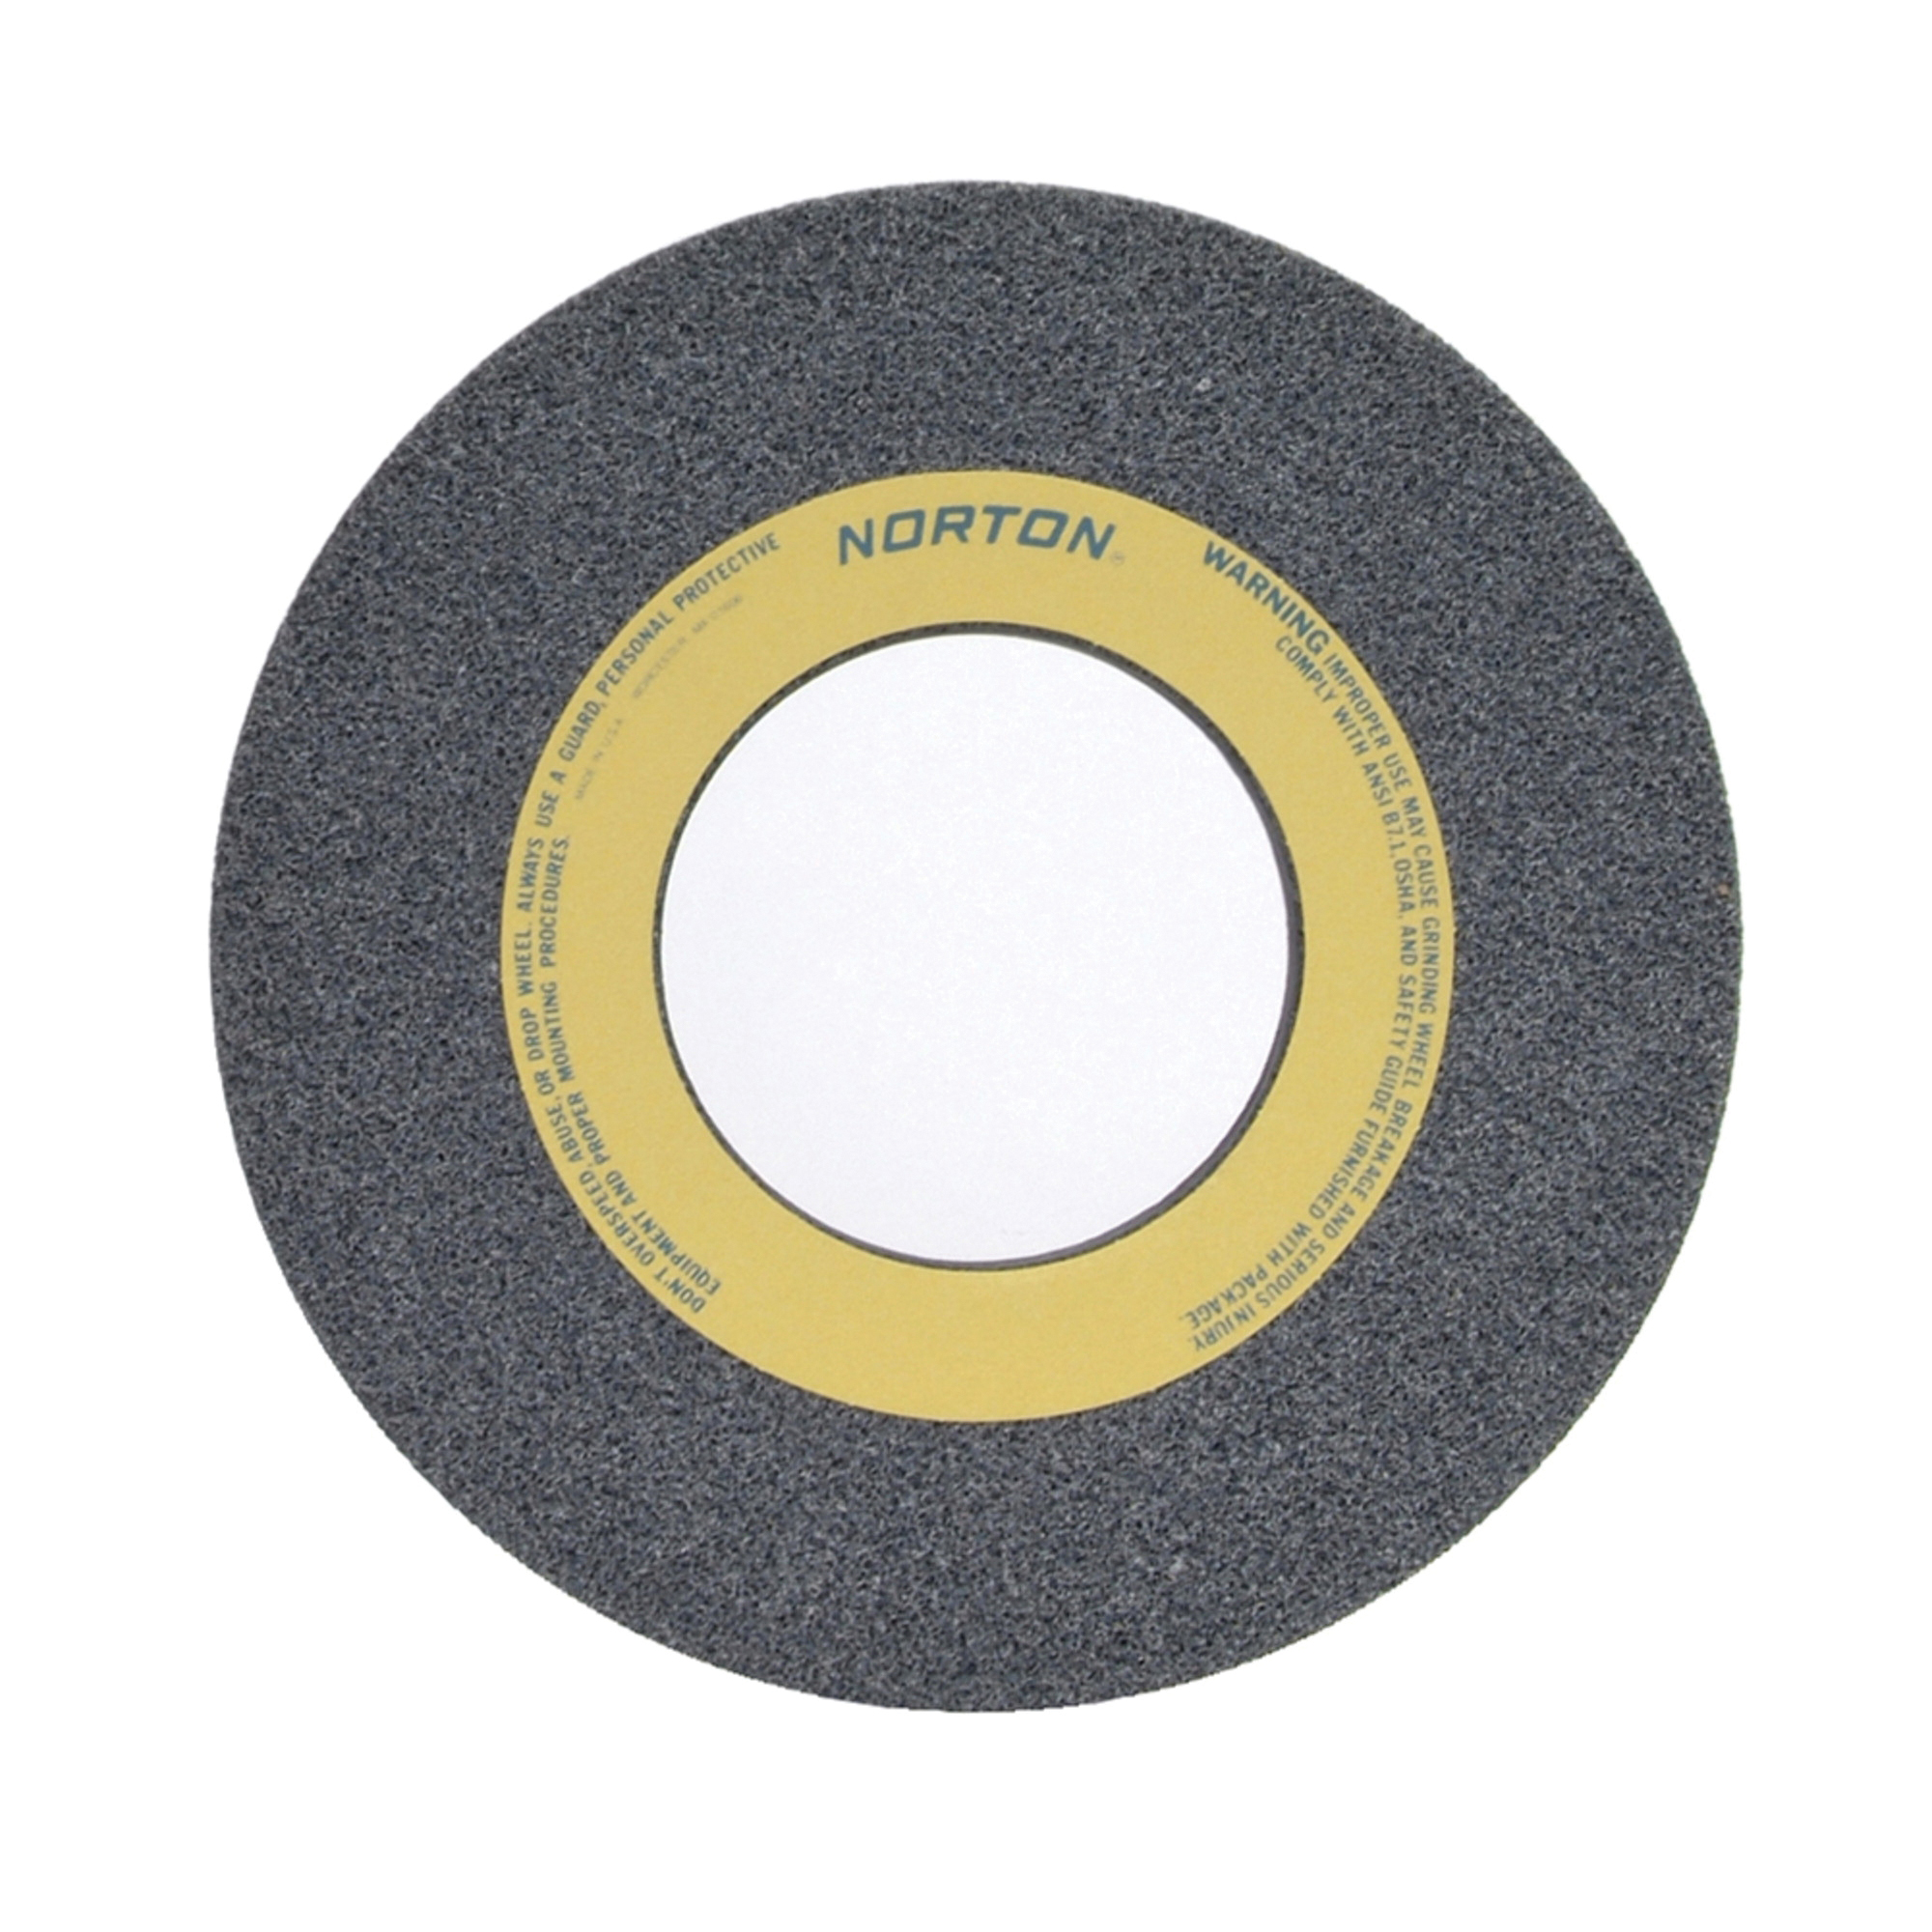 Norton® 66253364341 32A Straight Toolroom Wheel, 14 in Dia x 1-1/2 in THK, 5 in Center Hole, 60 Grit, Aluminum Oxide Abrasive